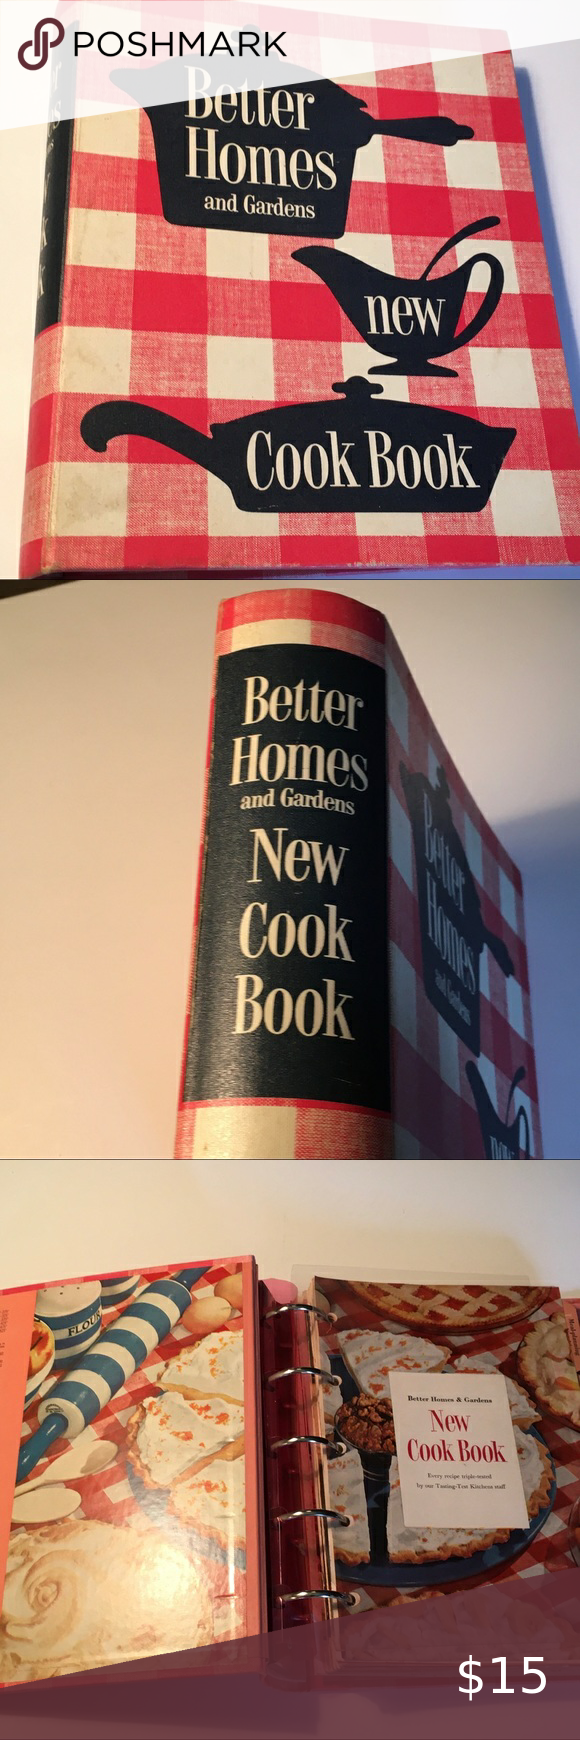 256b8771abe980092668301df13469dc - Better Homes And Gardens Cookbook 1953